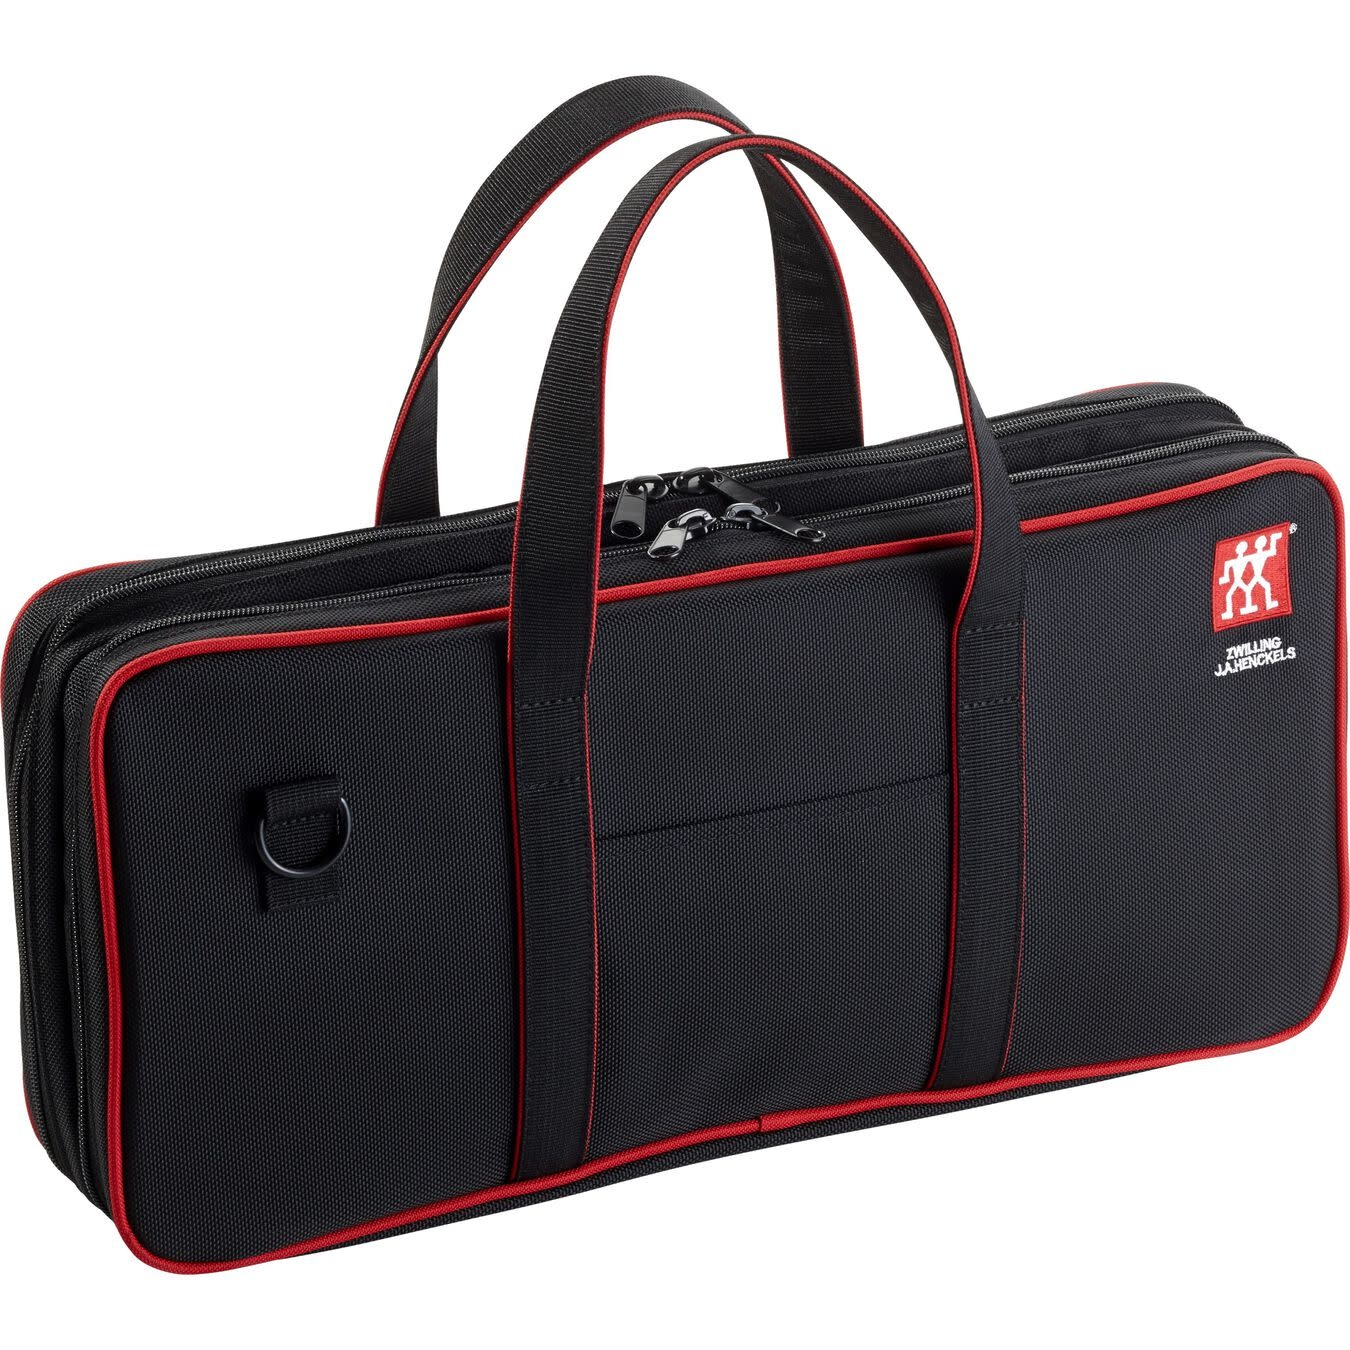 Zwilling J.A. Henckels Professional 2 Compartment Knife Bag